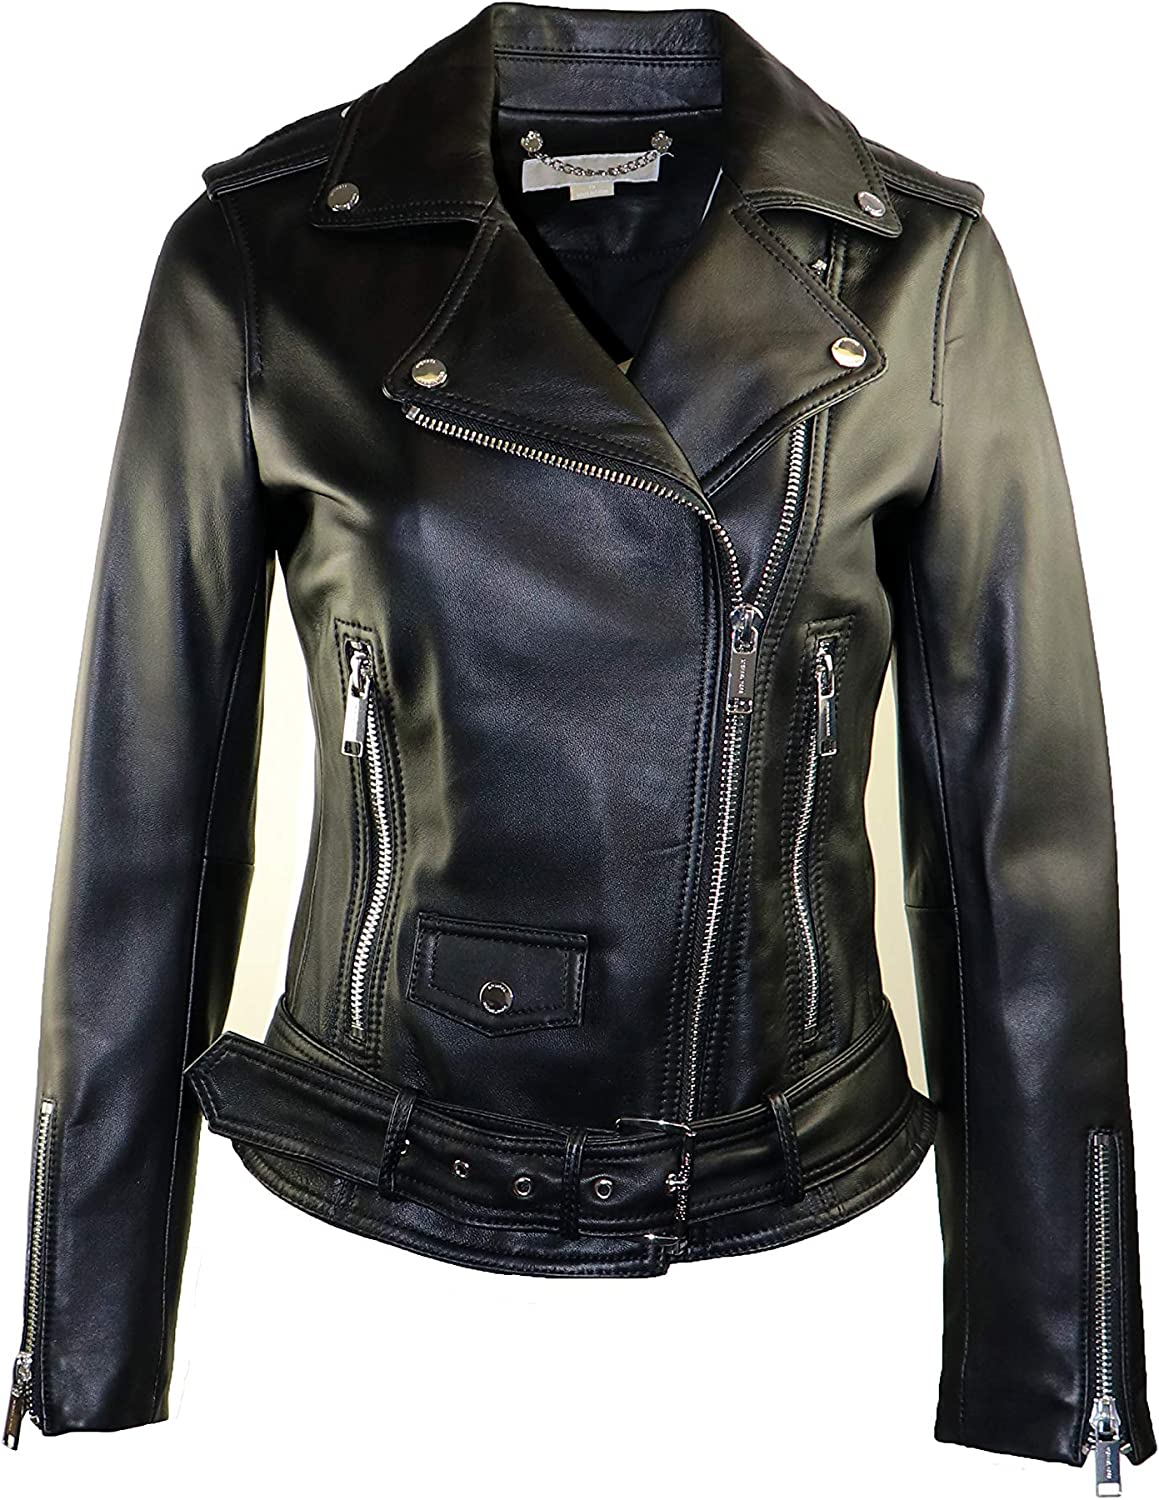 Michael Kors Women's Moto with Jacket 67% OFF of fixed price Belt Brand new Leather